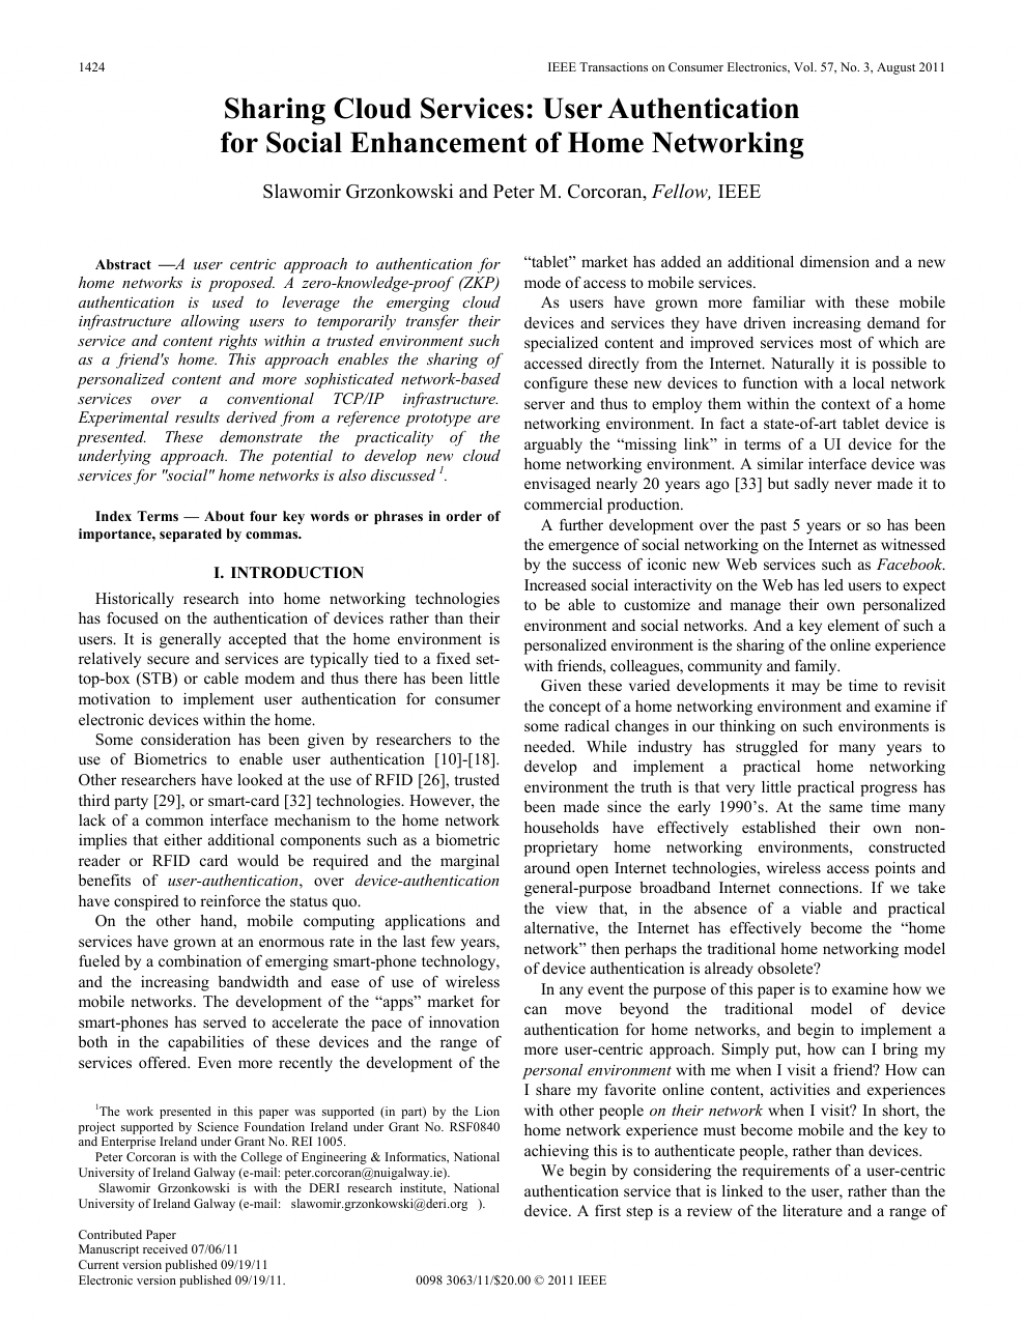 003 Research Paper Free Ieee Papers Computer Unusual Science On In For Large